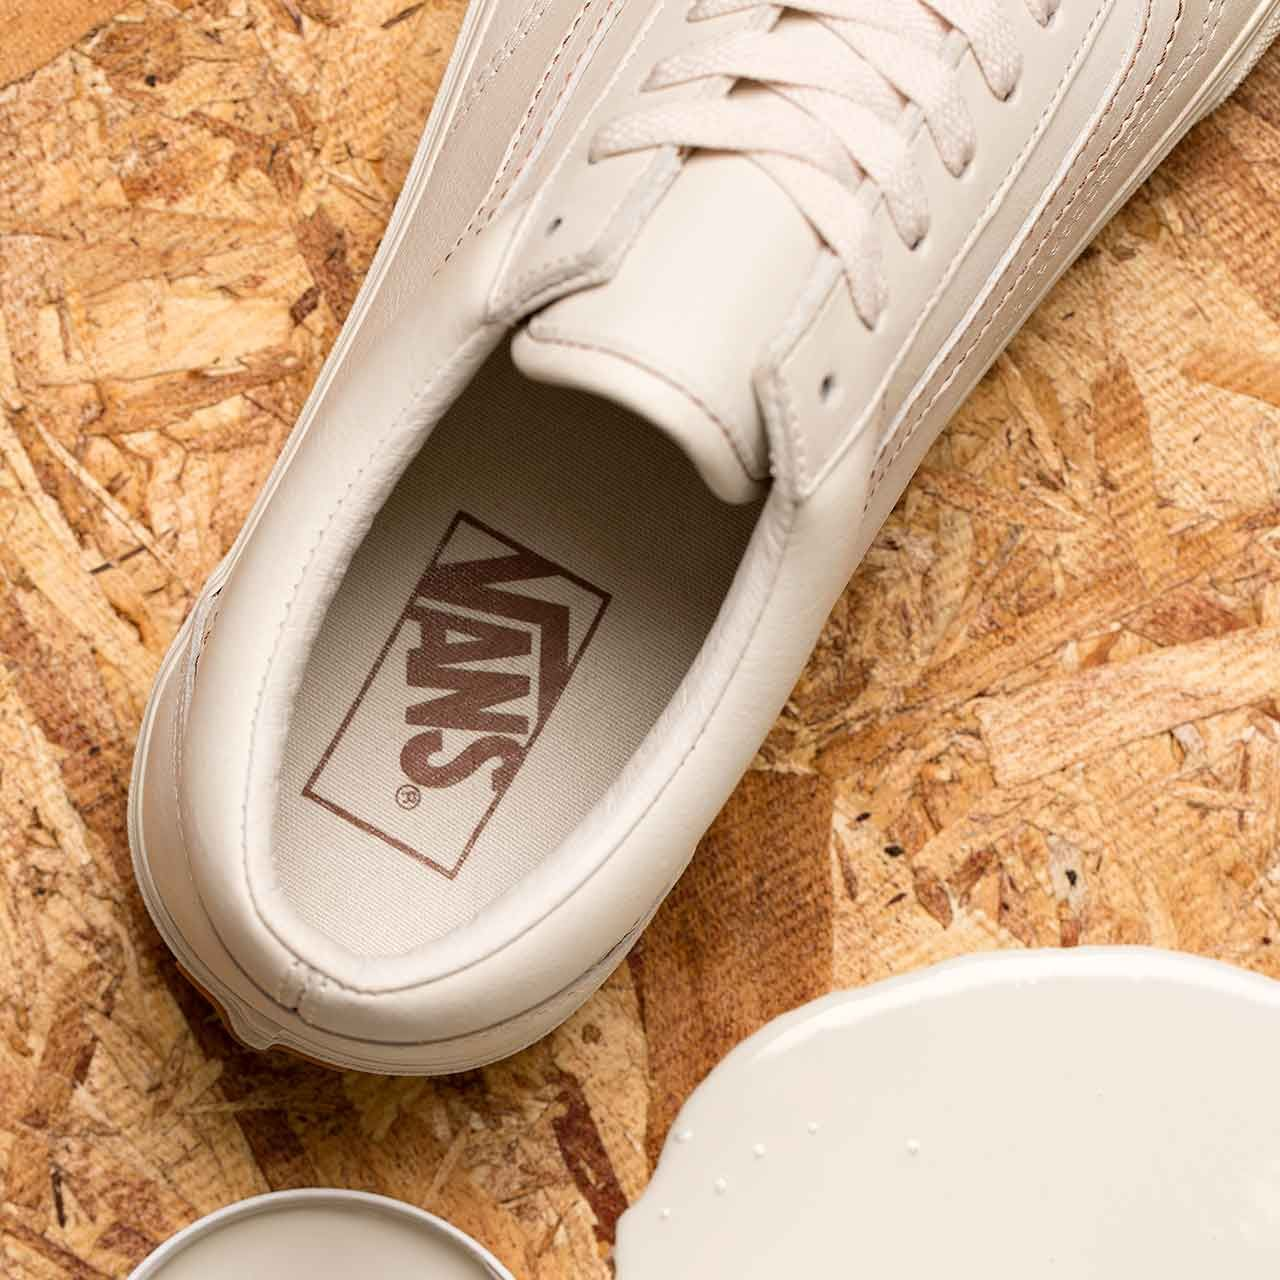 ecbfed8d9f The Footasylum Exclusive Vans Old Skool  Hard Work Pack  Trainer is  available in three colour-ways.